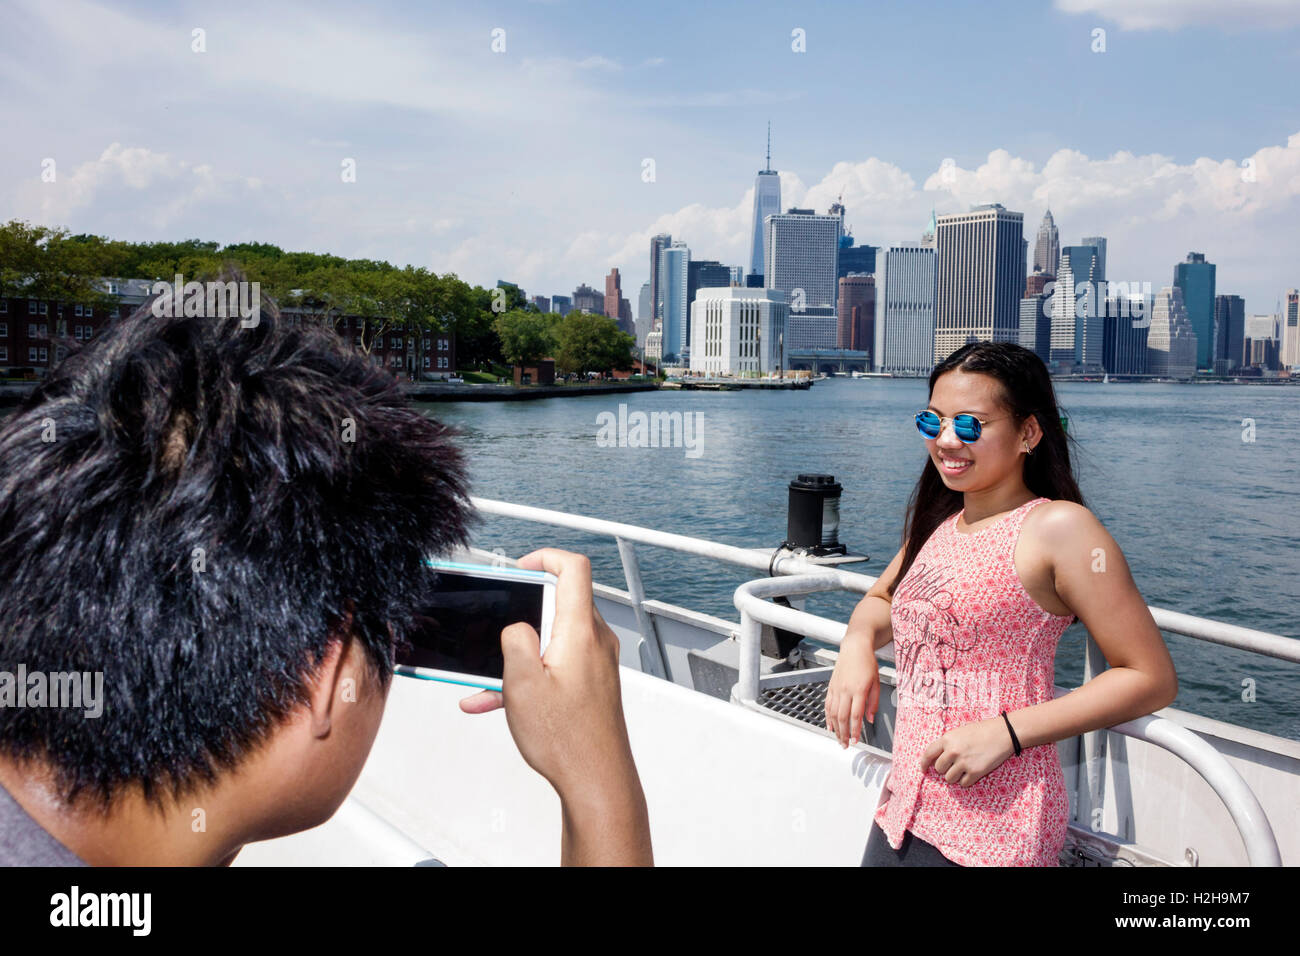 Brooklyn New York City NYC NY New York Harbor Brooklyn Bridge Park Pier 6  Governors Island Ferry boat passenger Manhattan skyline Asian girl boy teen